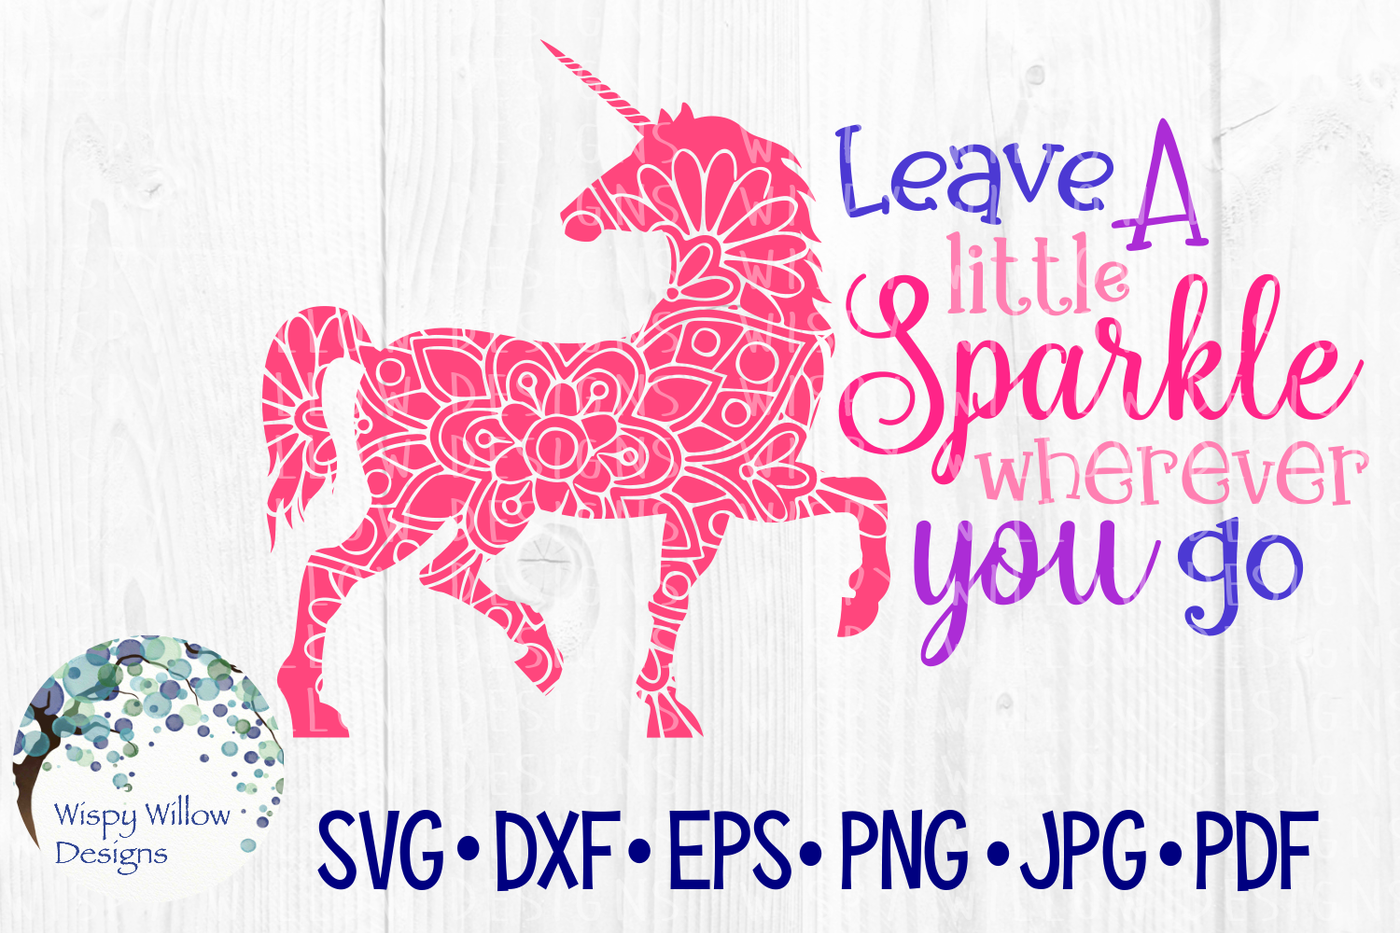 Leave A Little Sparkle Wherever You Go Unicorn Mandala Svg Dxf